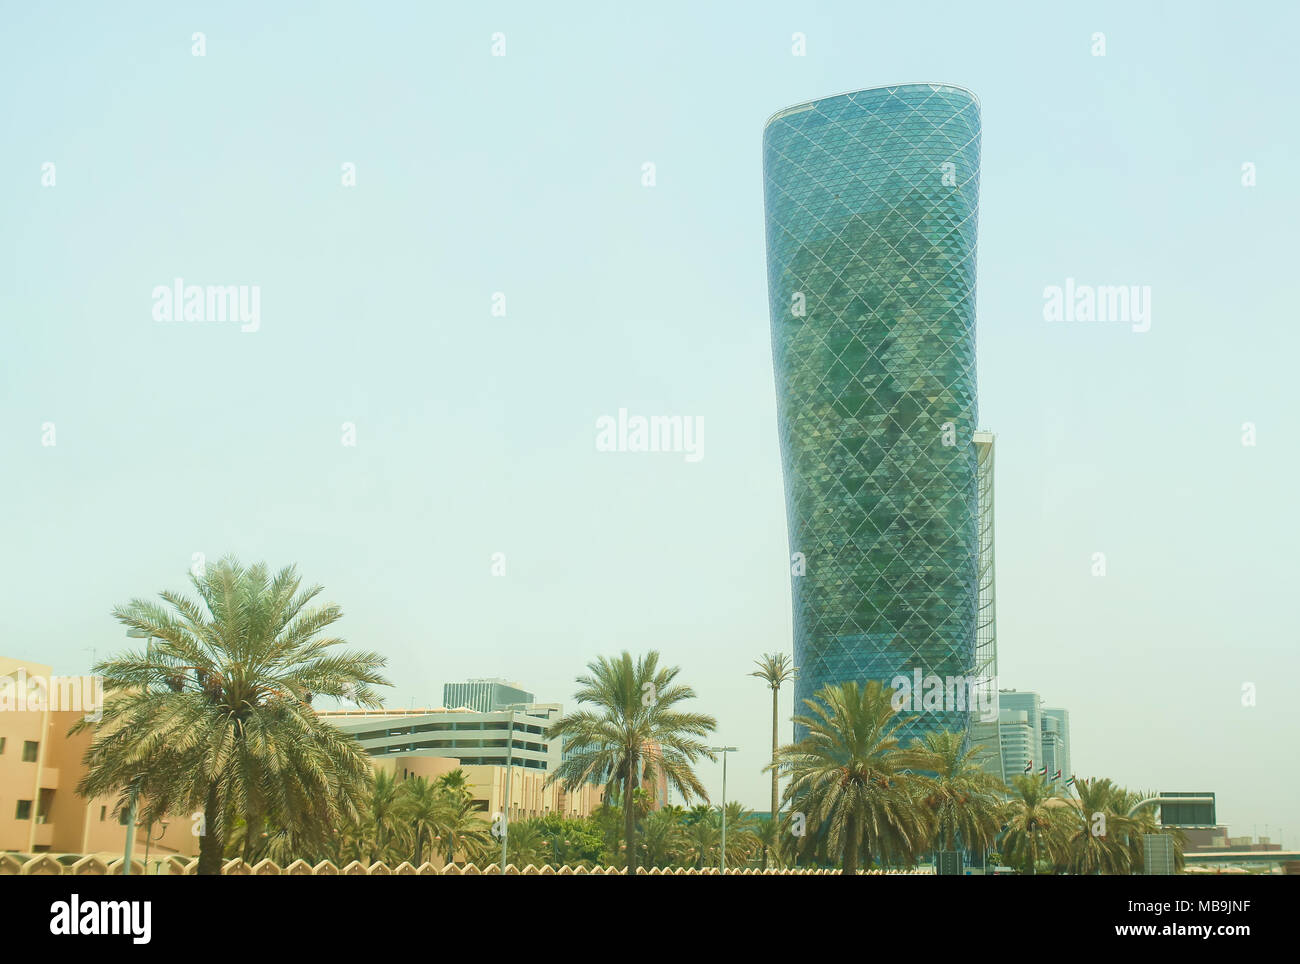 ABU DHABI, UAE - NOVEMBER 5: The Capital Gate Tower on the November 5, 2013 in Abu Dhabi, This is certified as the World's Furthest Leaning Manmade in the world. Stock Photo